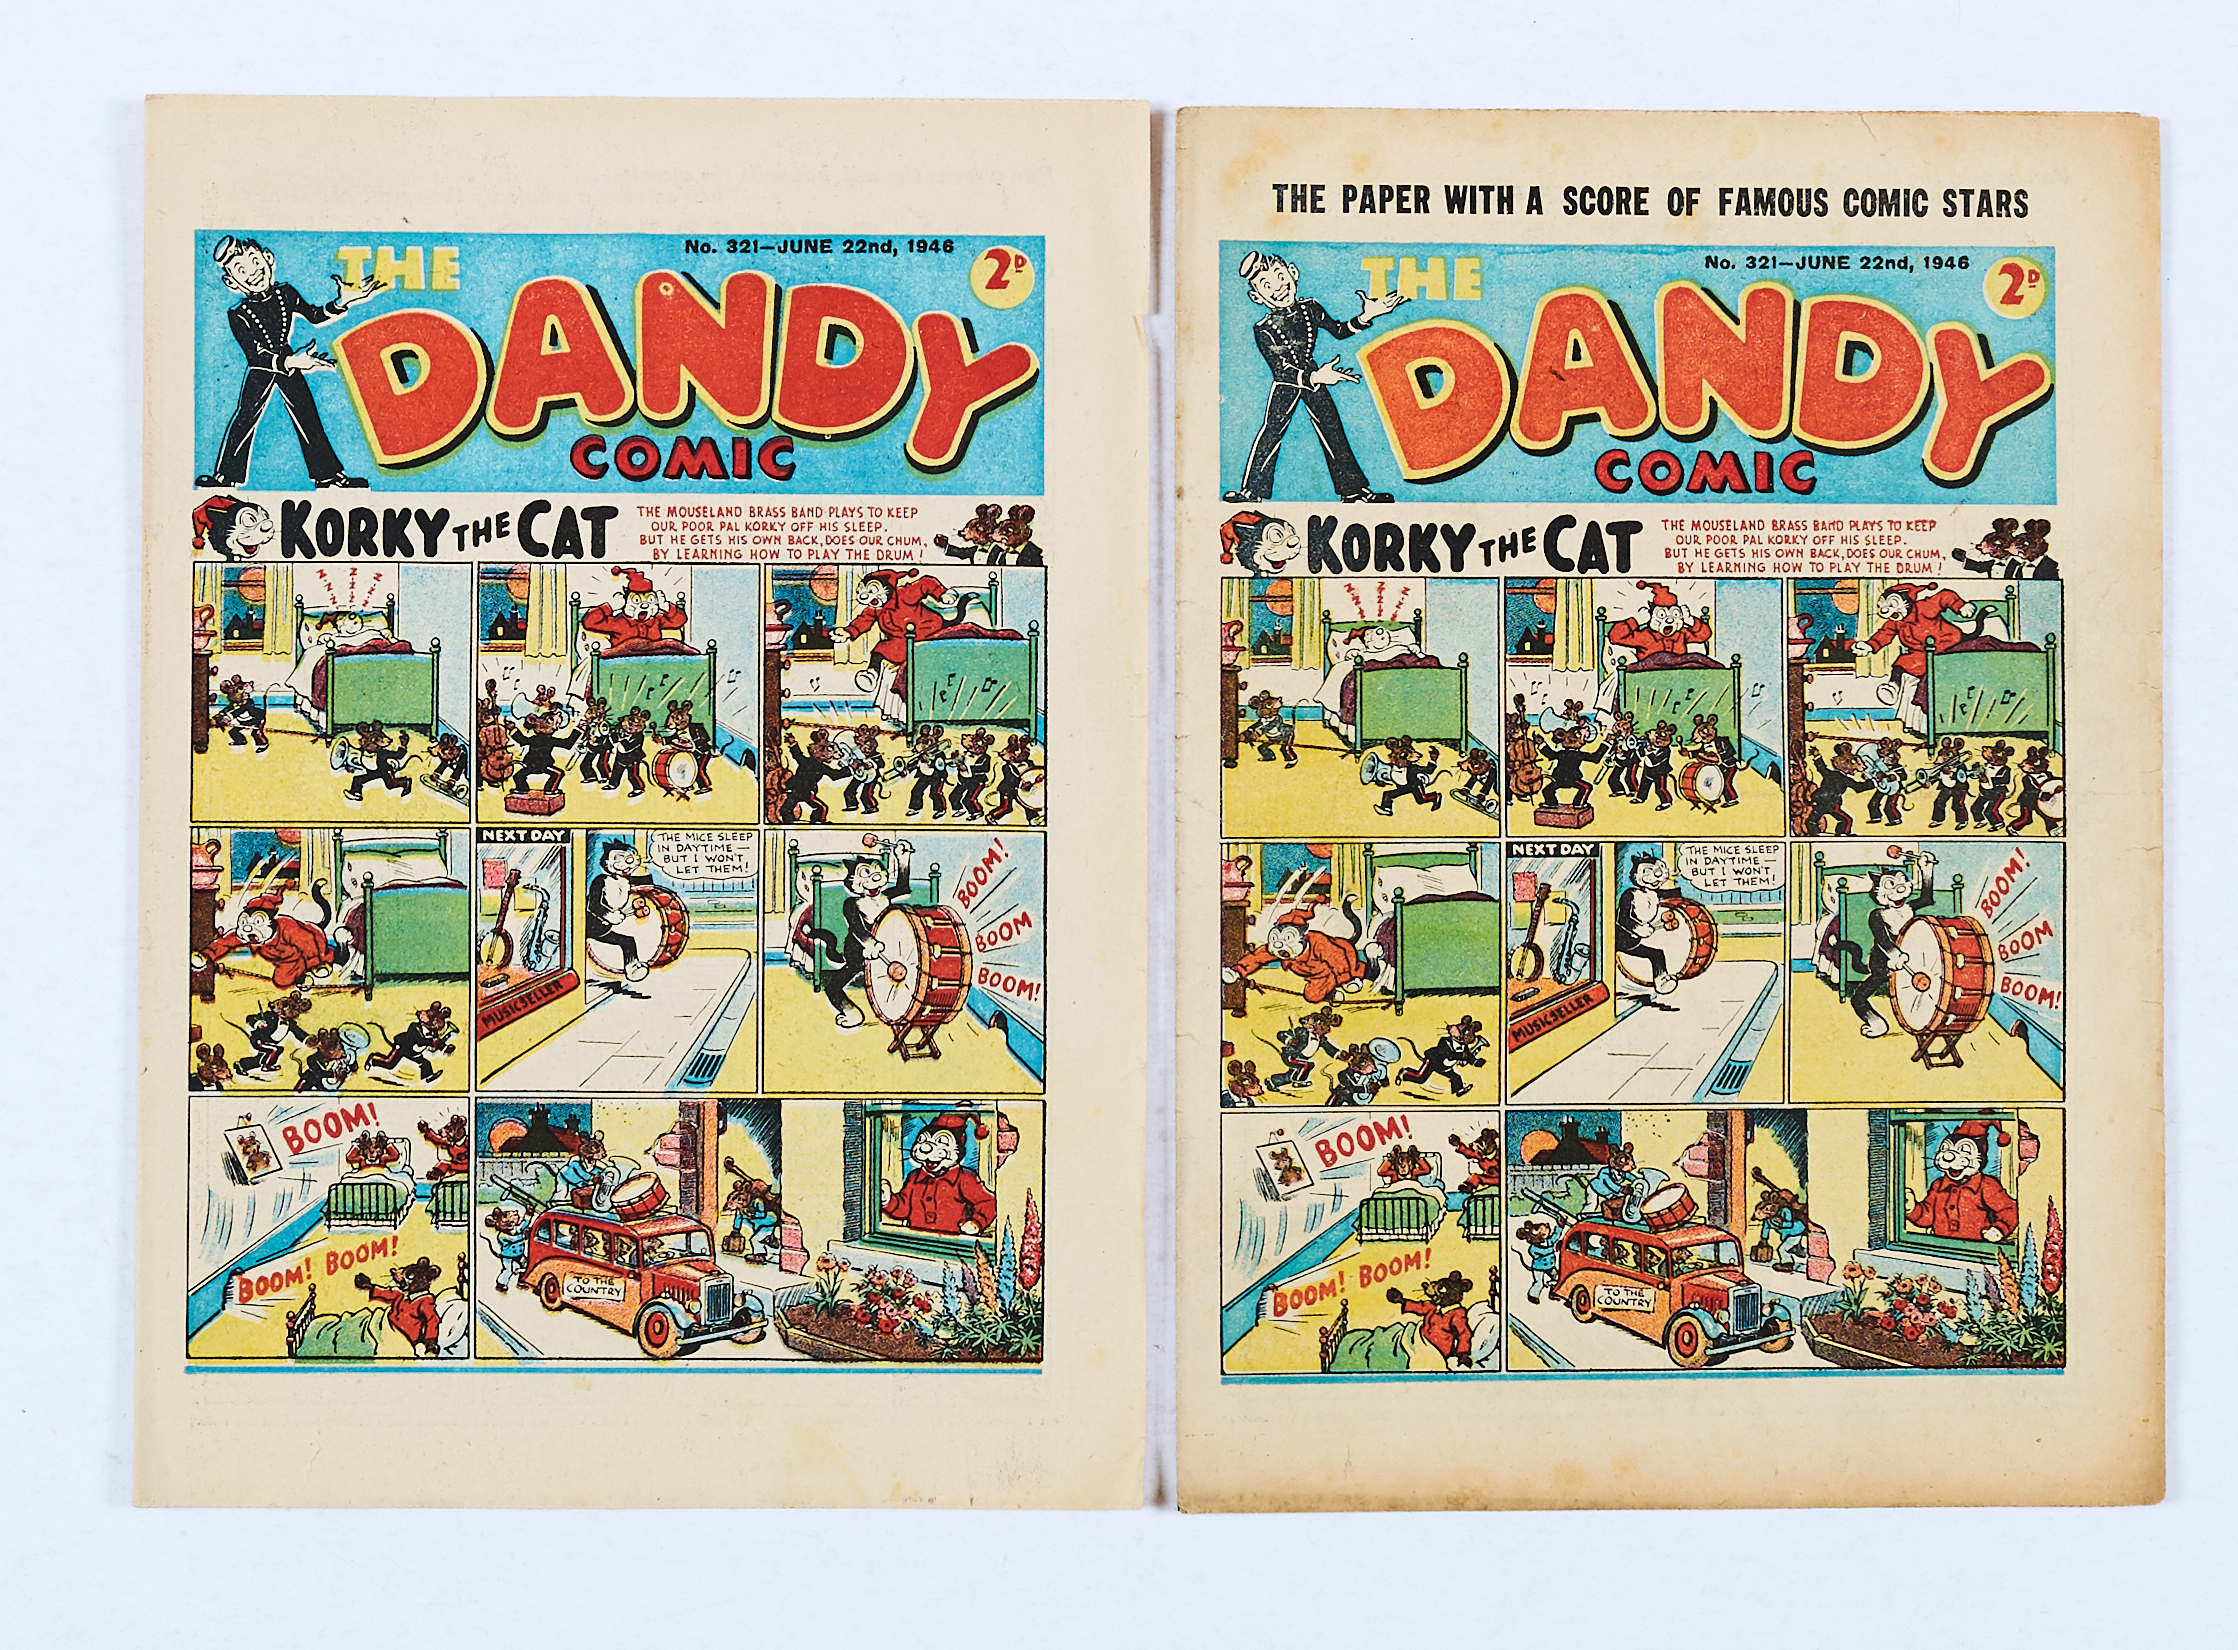 Lot 22 - Dandy 321 (June 22 1946) misprint top cover variant with original No 321 issue [vg+/fn] (2)